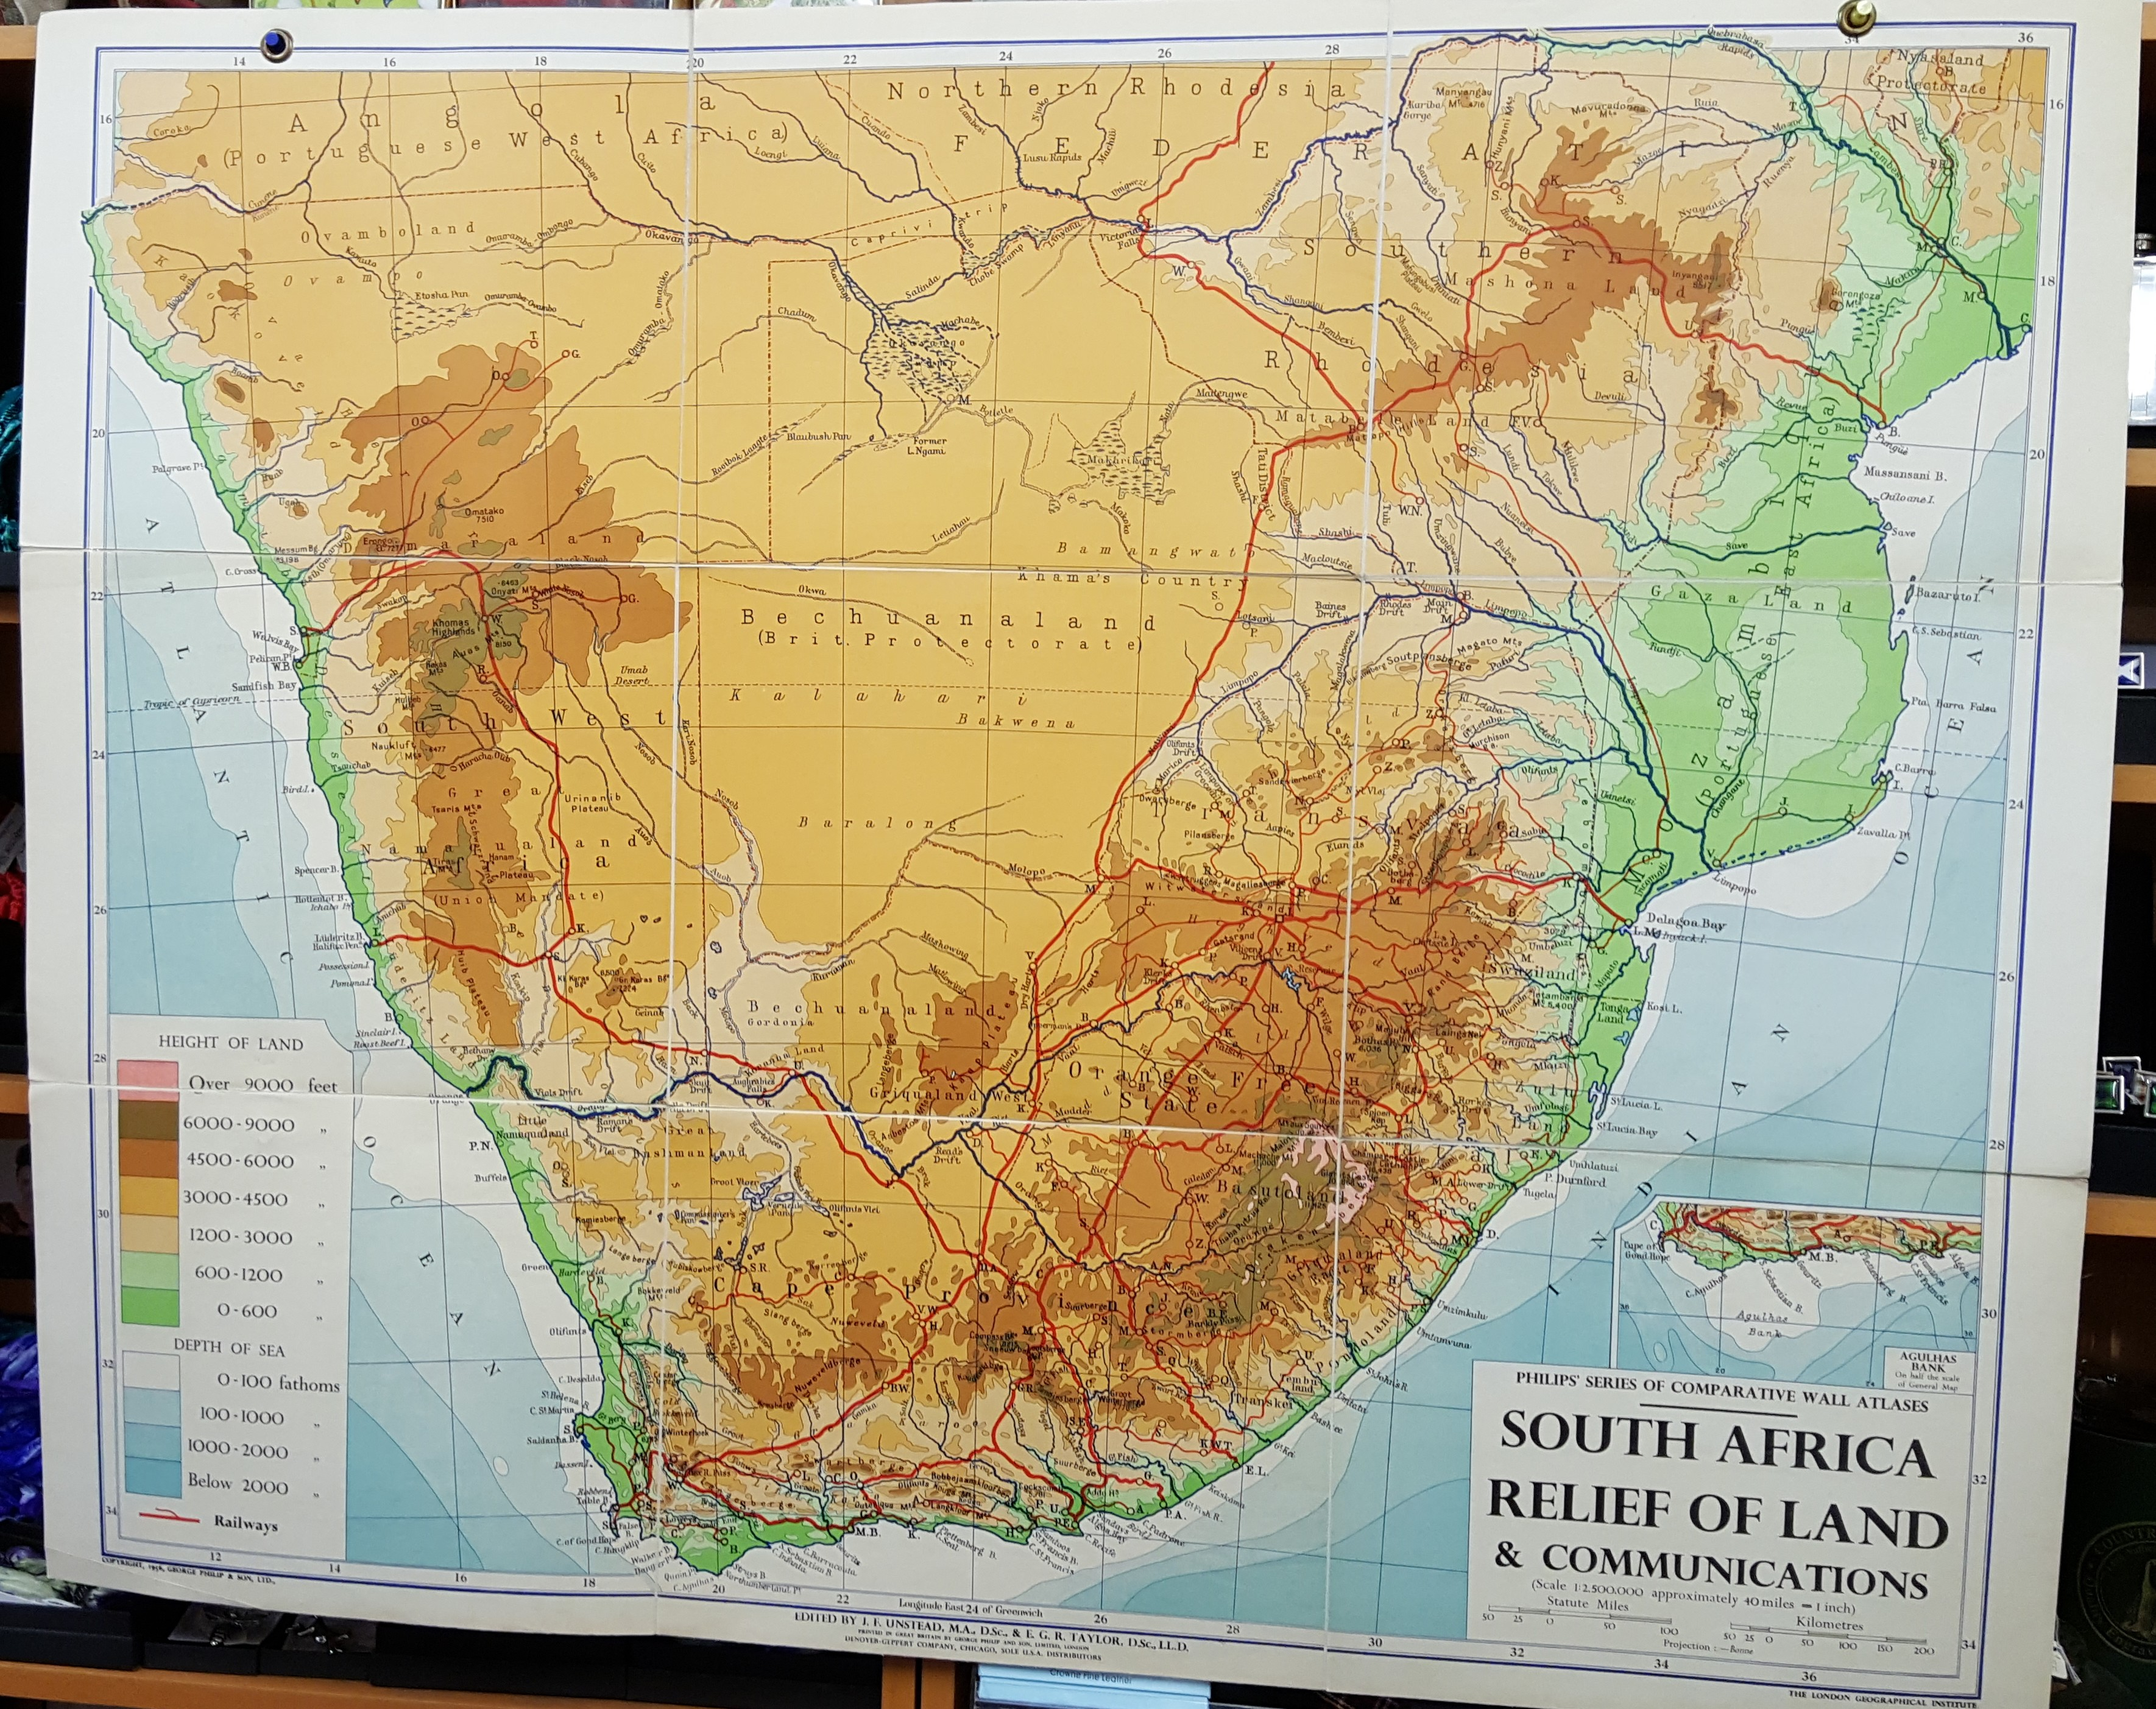 Image for Philips' Comparative Wall Atlas of South Africa - Relief of Land, Political and Communications